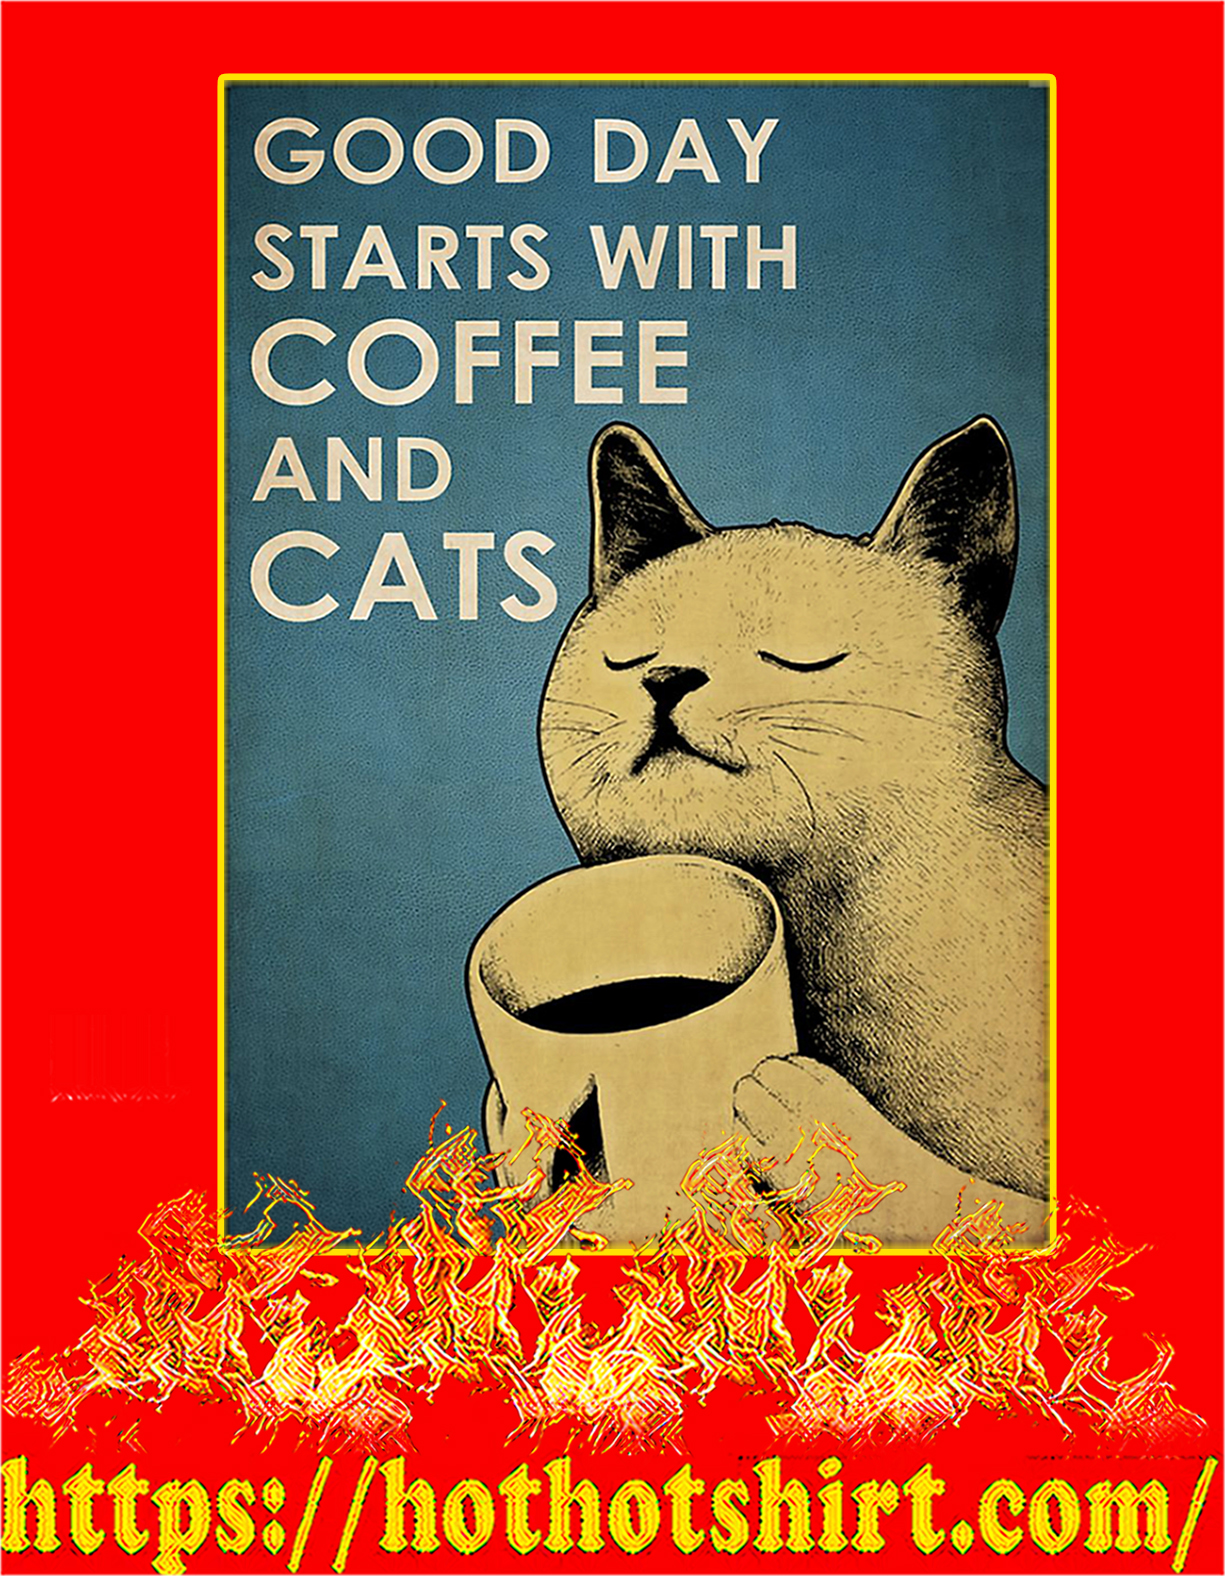 Good day starts with coffee and cats poster - A4